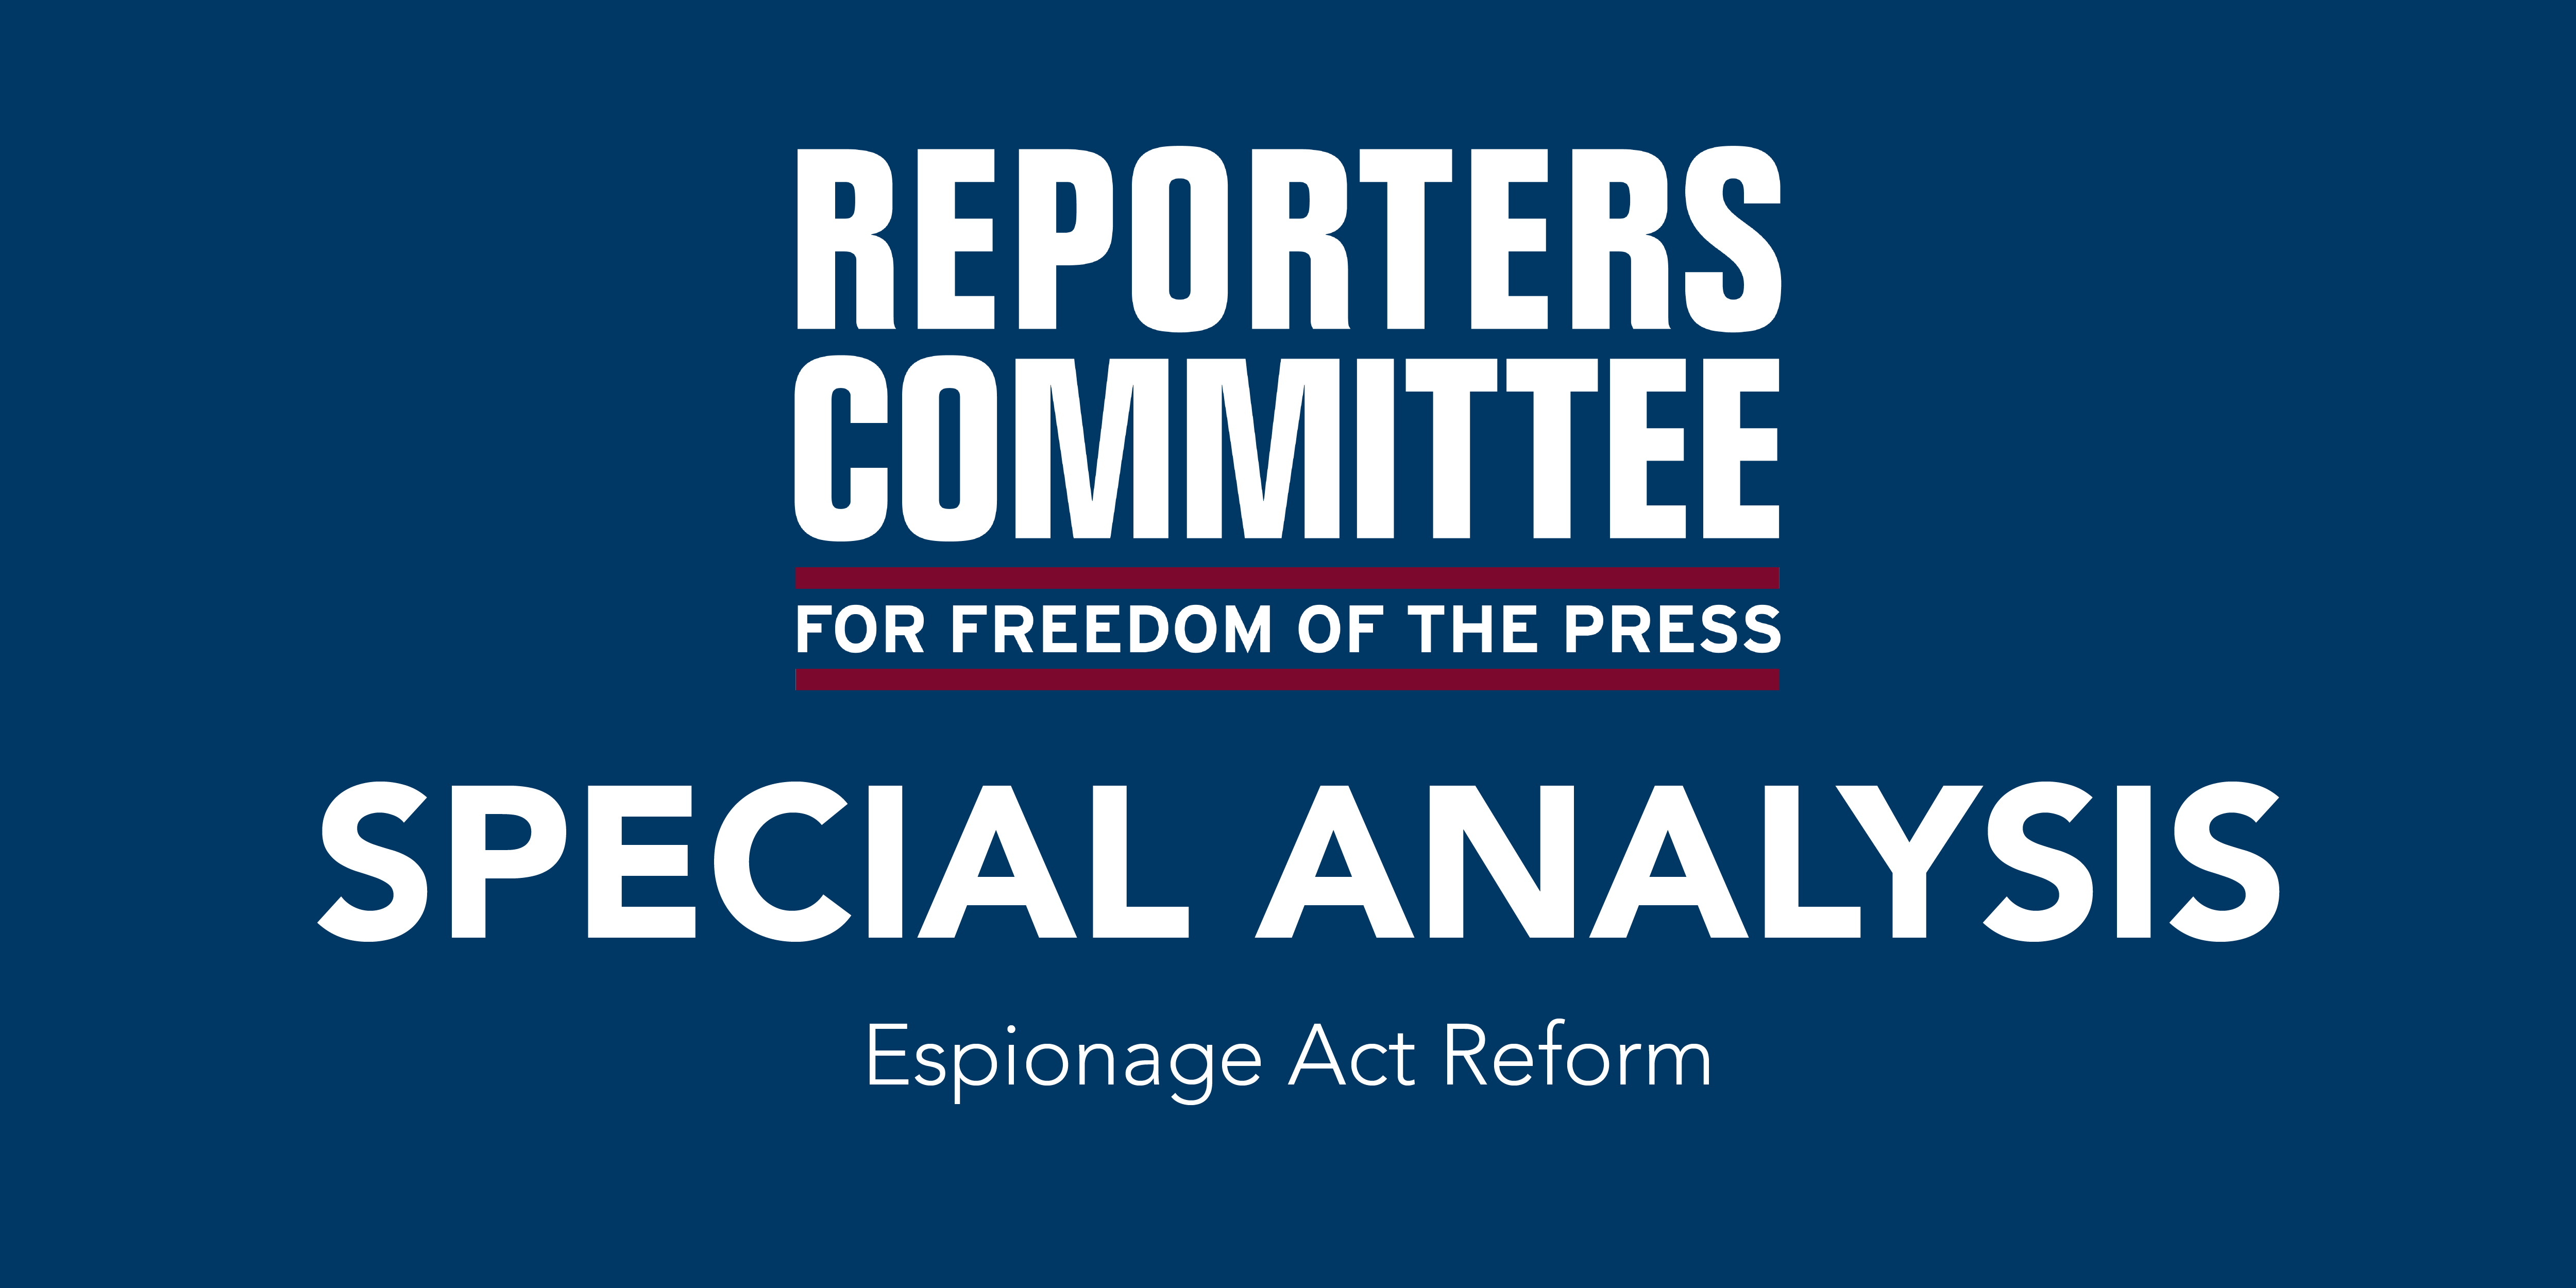 Special Analysis graphic for Espionage Act reform bill